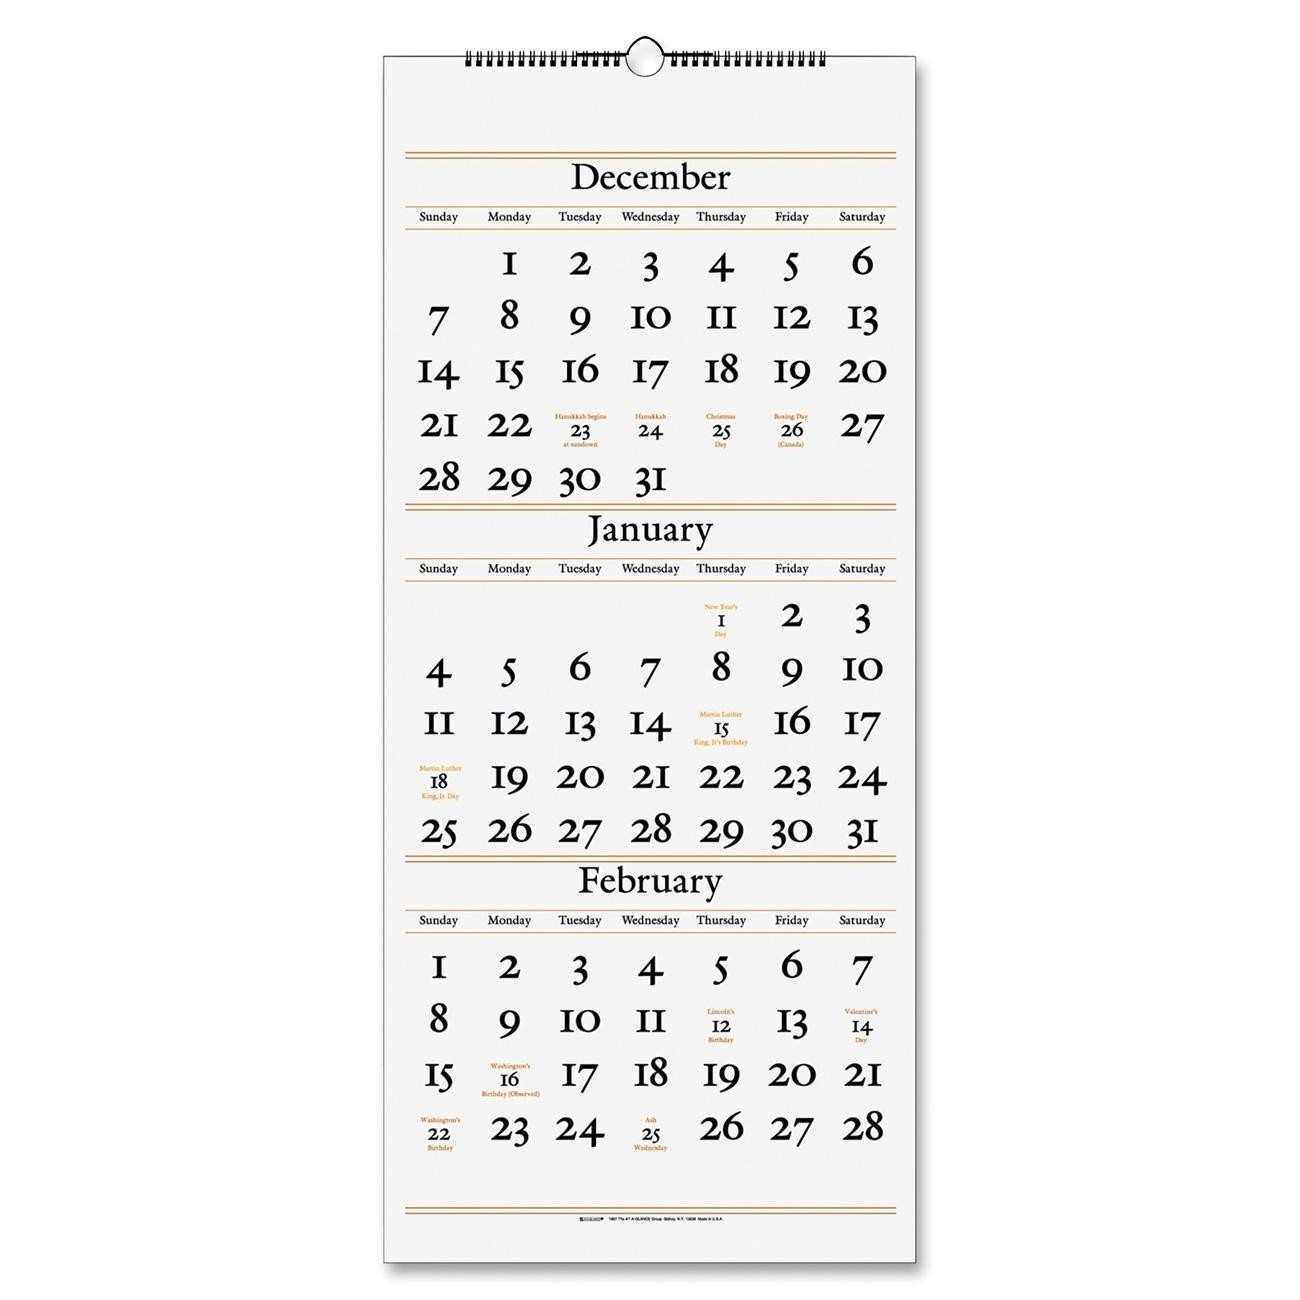 At-A-Glance 3-Months Reference Wall Calendar - Ld Products  3 Months In One Calenadar